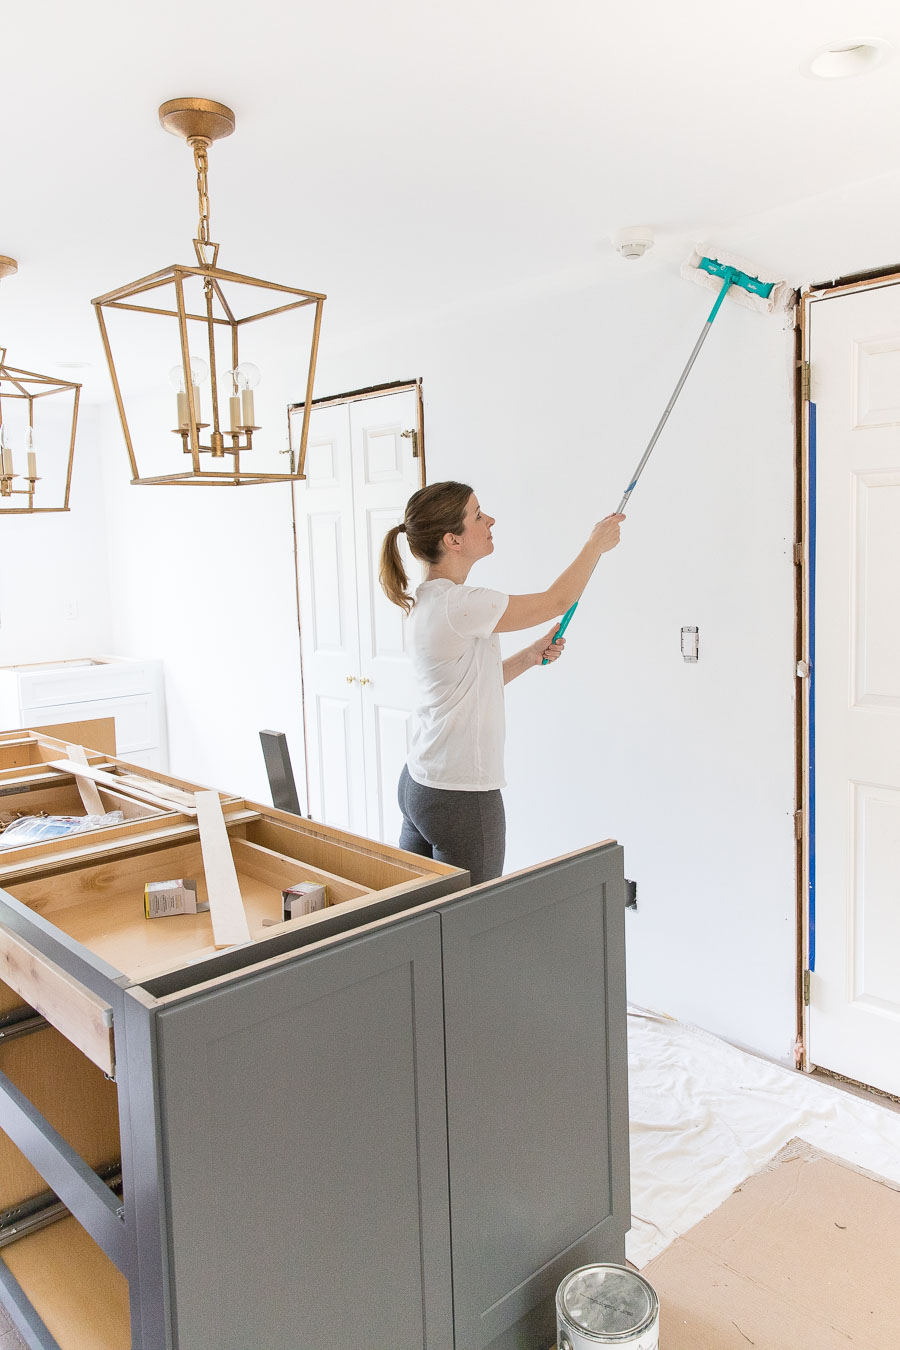 Wondering how you clean drywall dust before painting? This is genius!